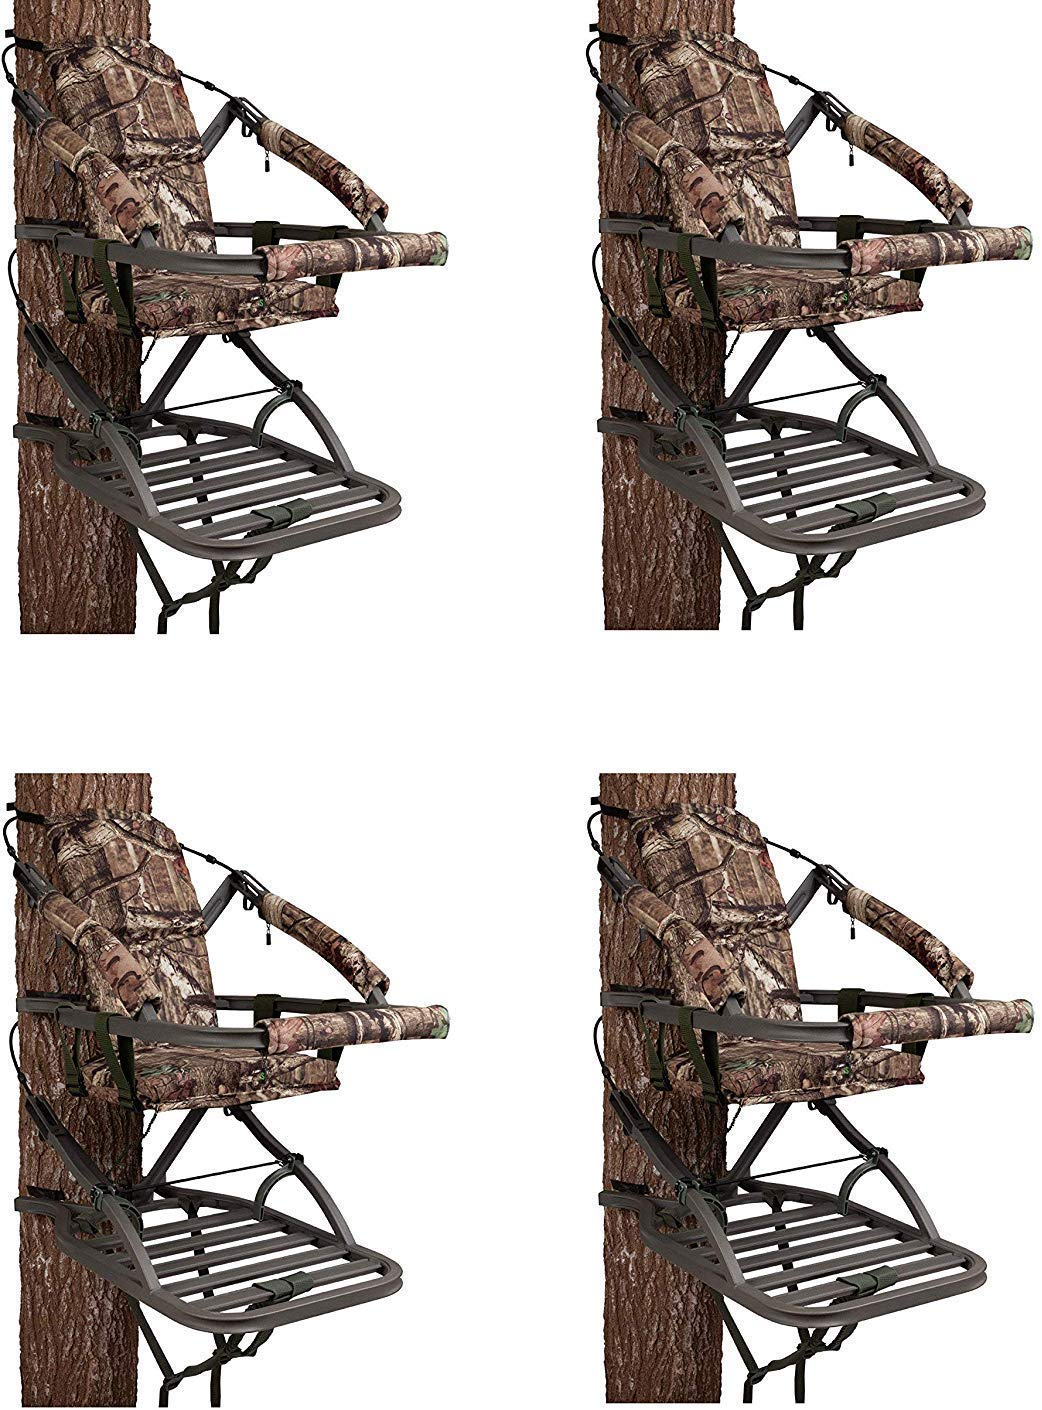 Summit Treestands 81120 Viper SD Climbing Treestand, Mossy Oak (Pack of 4) by Summit Treestands